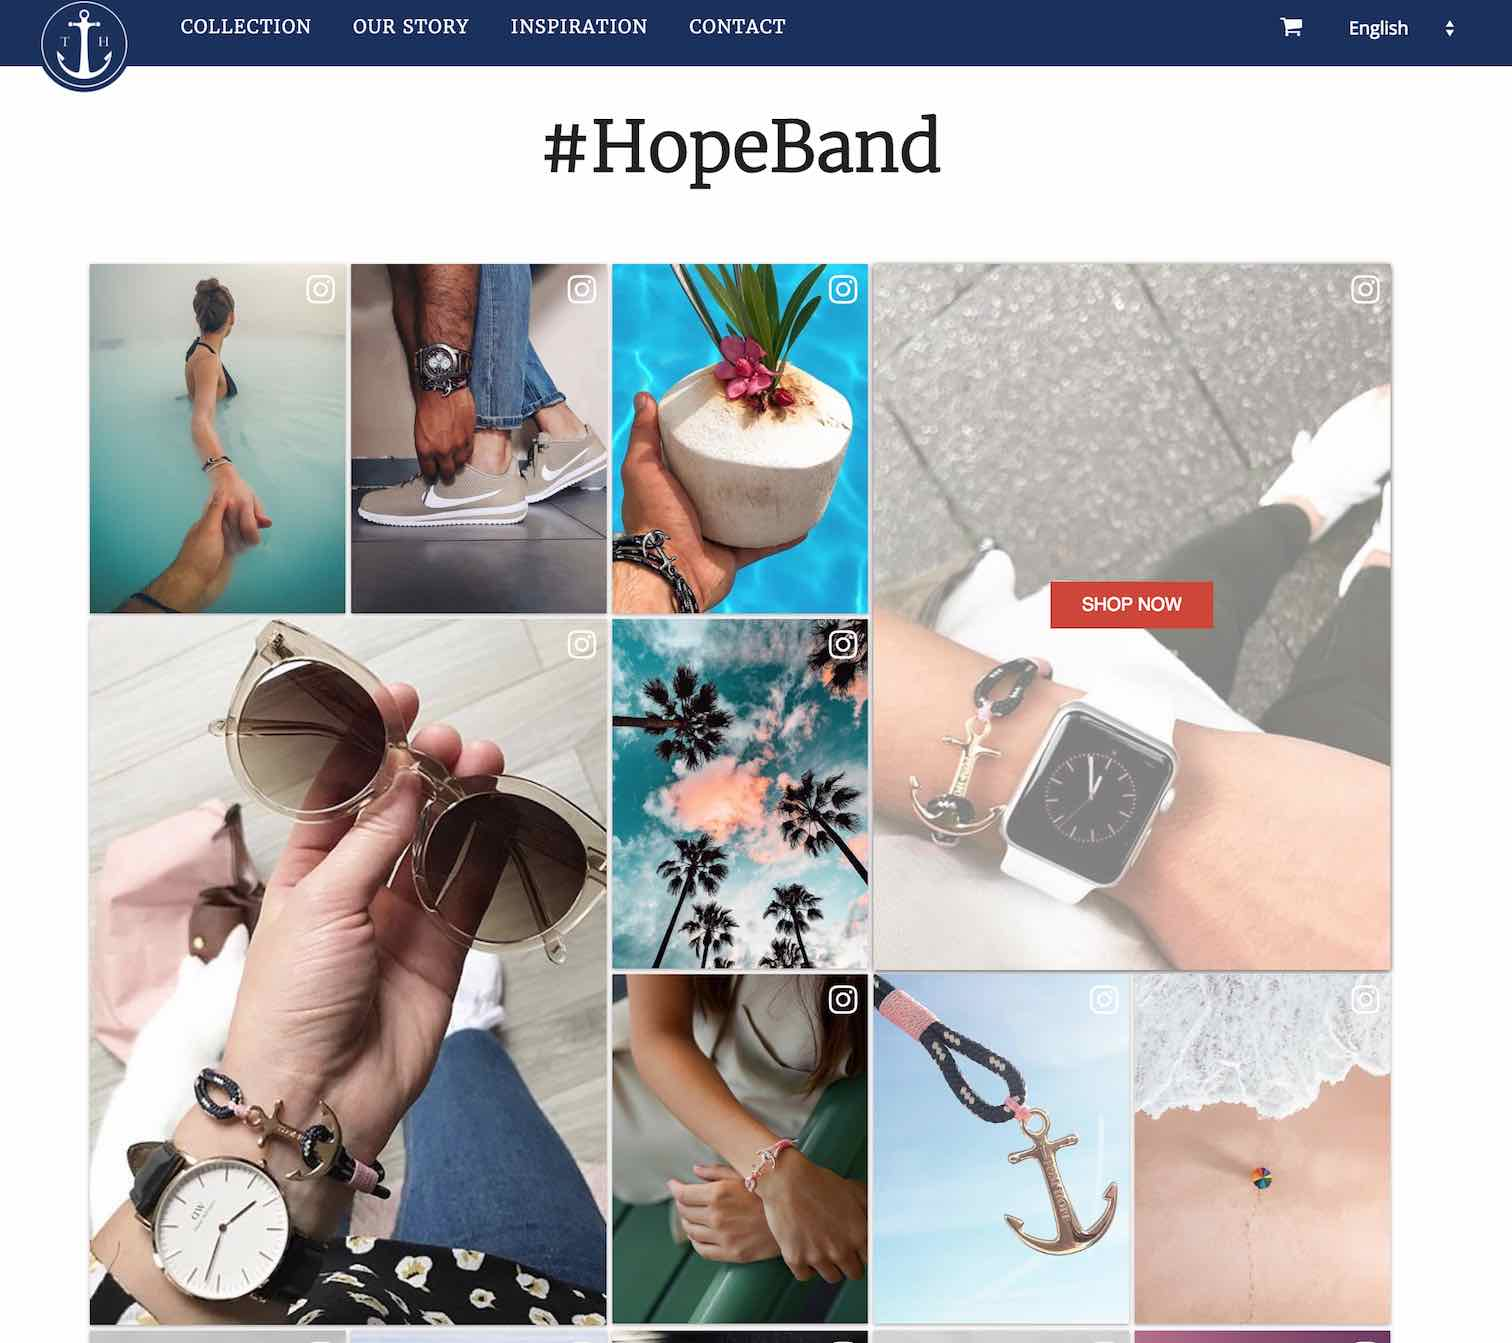 shoppable instagram feed with featured items